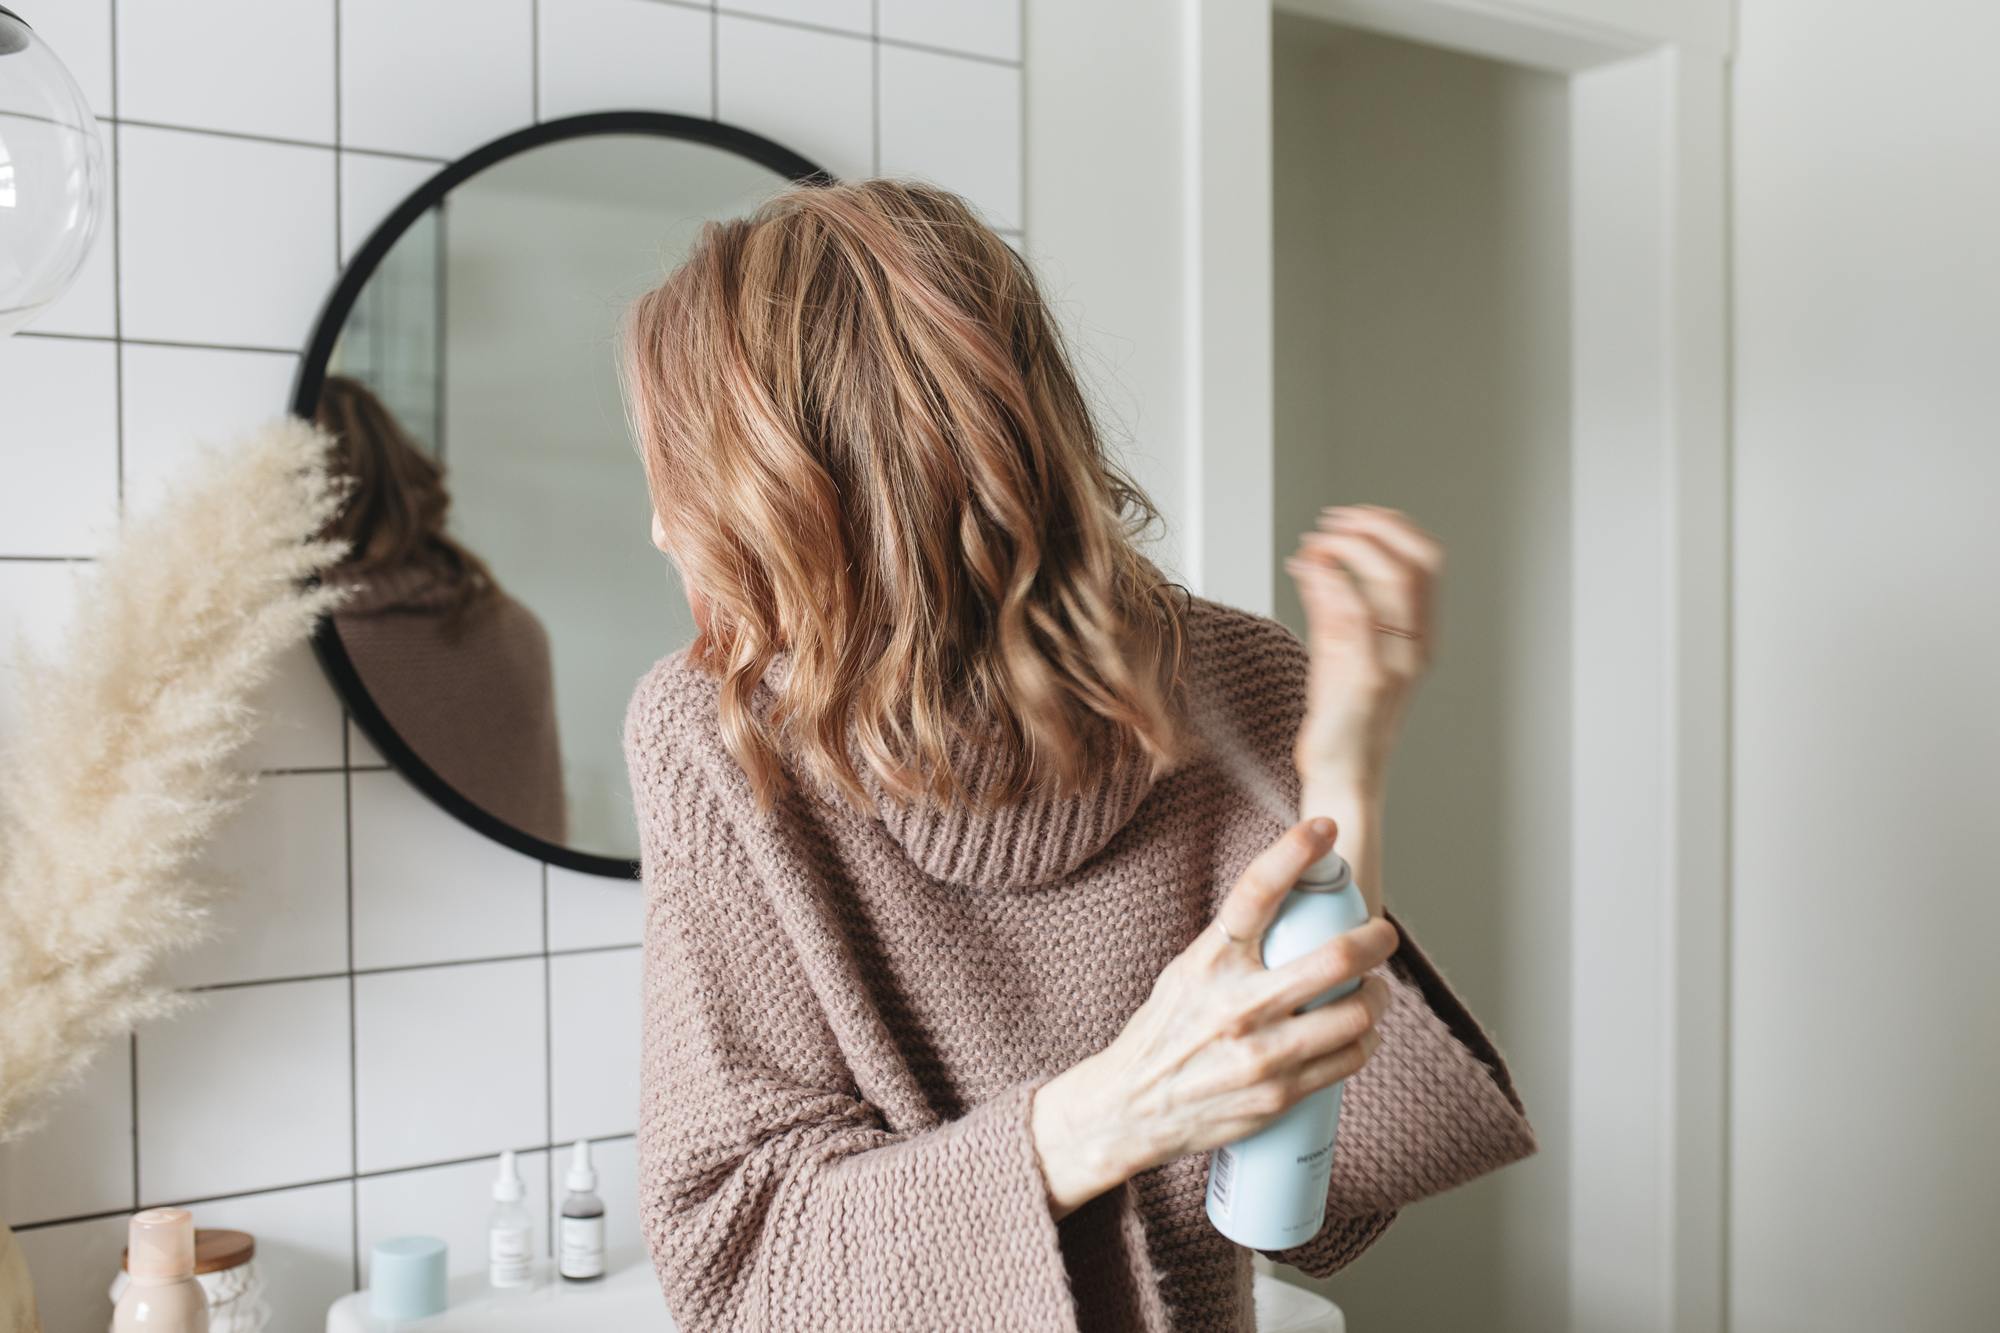 Follow along for my at home hair care routine. There are many ways to color and manage your hair without the expense of a salon and you can do it your way.